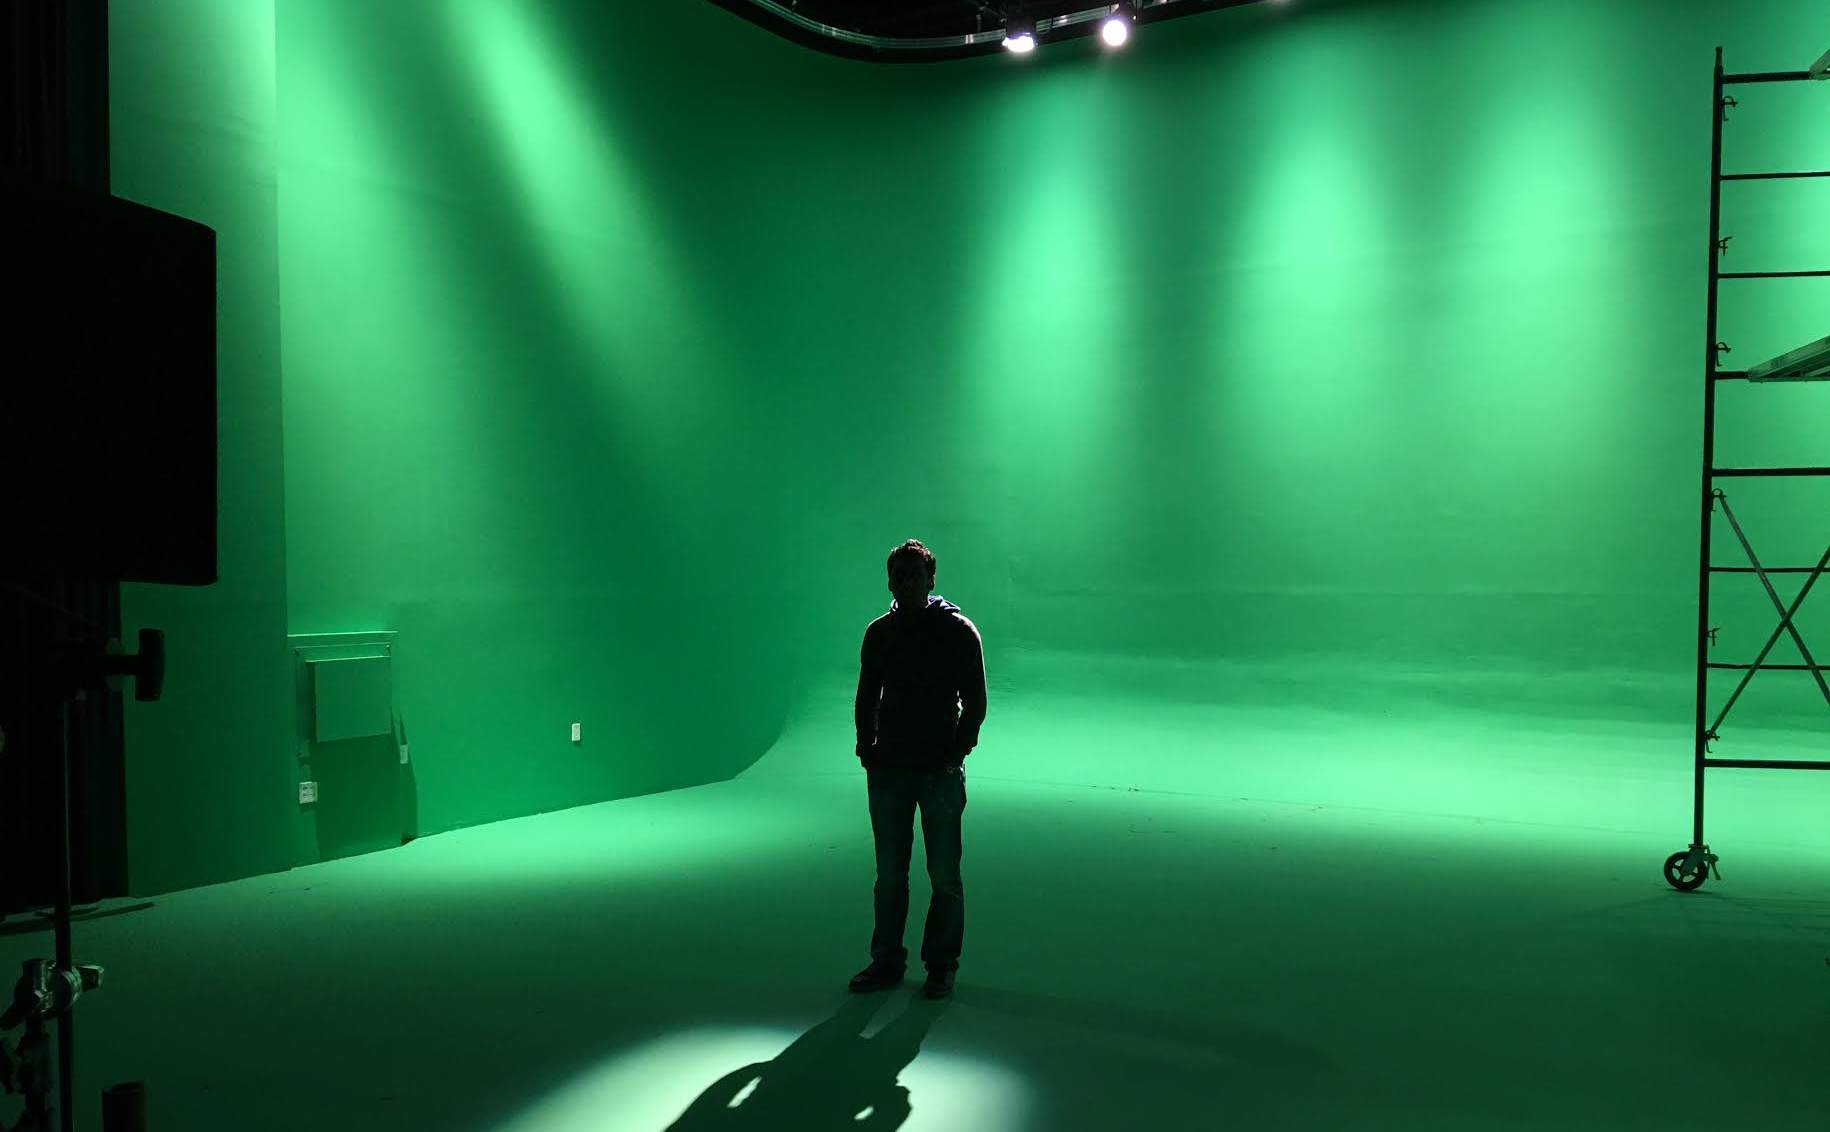 Lone man/shadow against Green Screen - Astoria